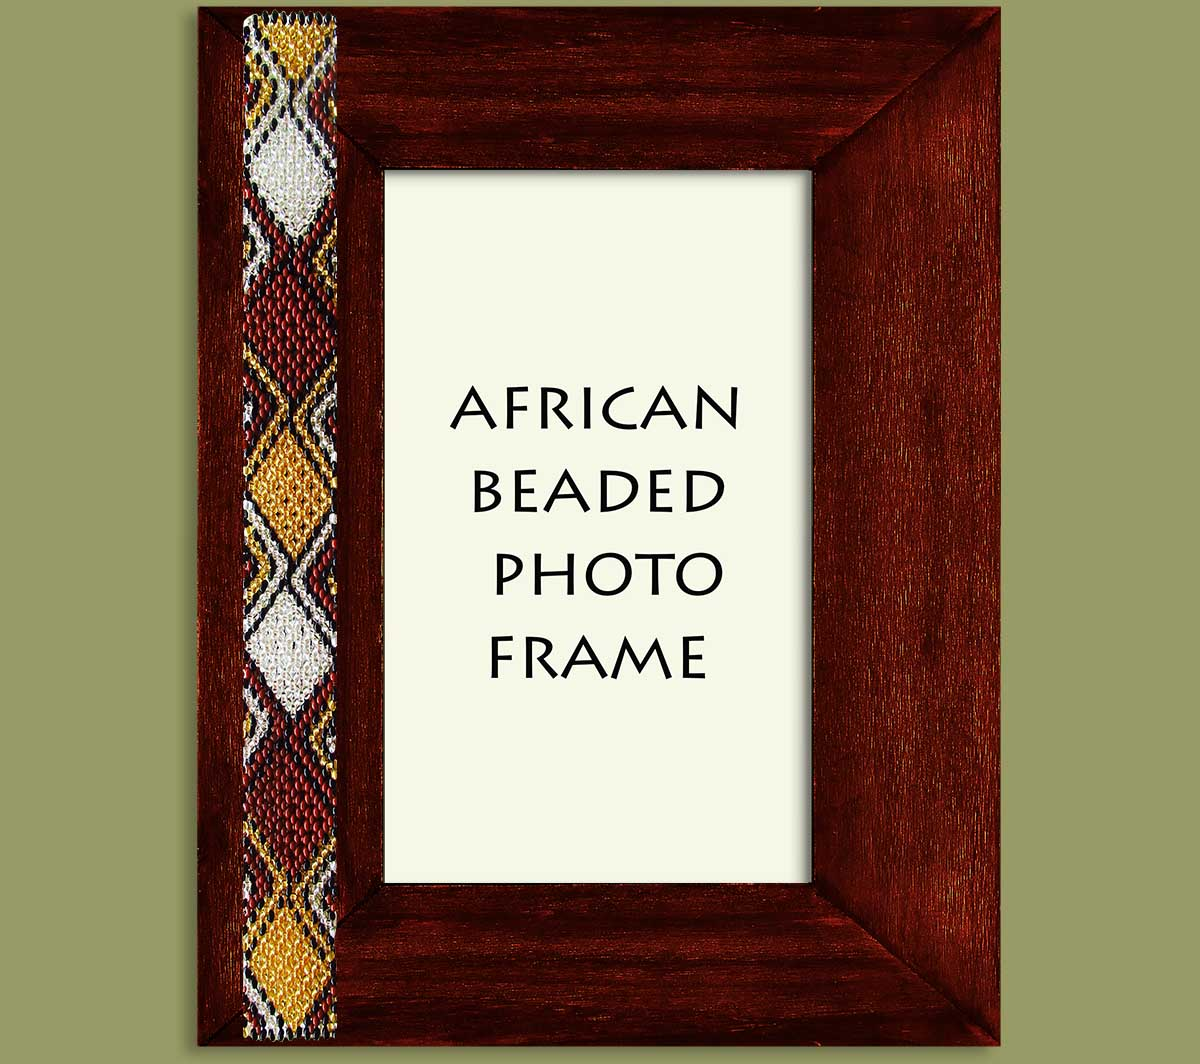 Beaded Photo Frame Gold Brown Black Silver x 1